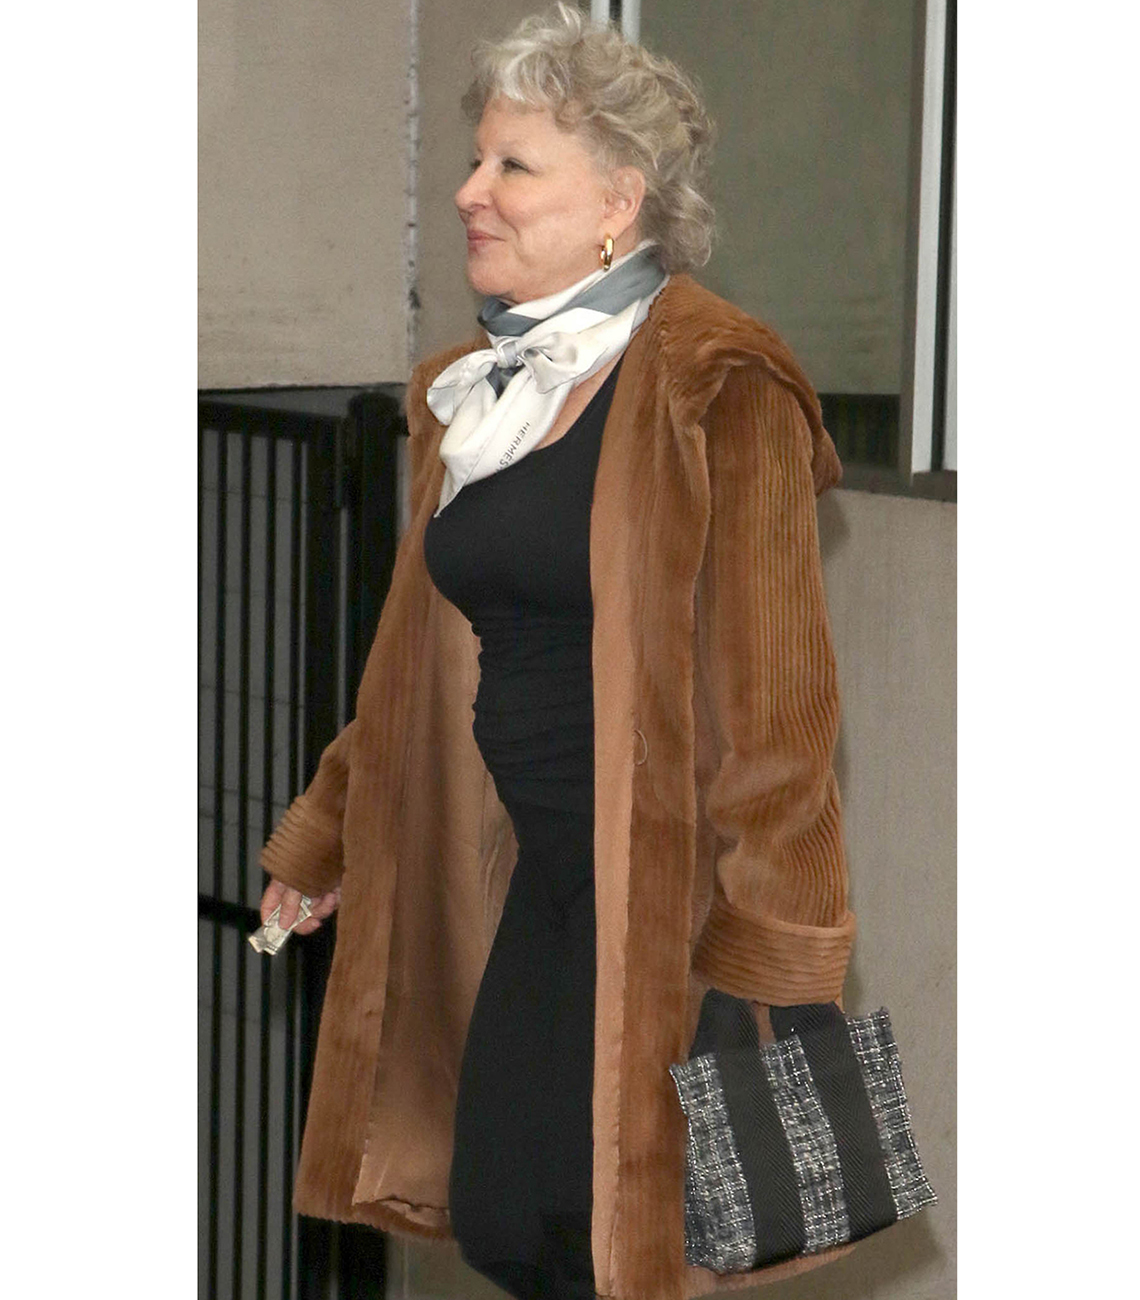 Bette Midler fits all her essentials in a small tote.